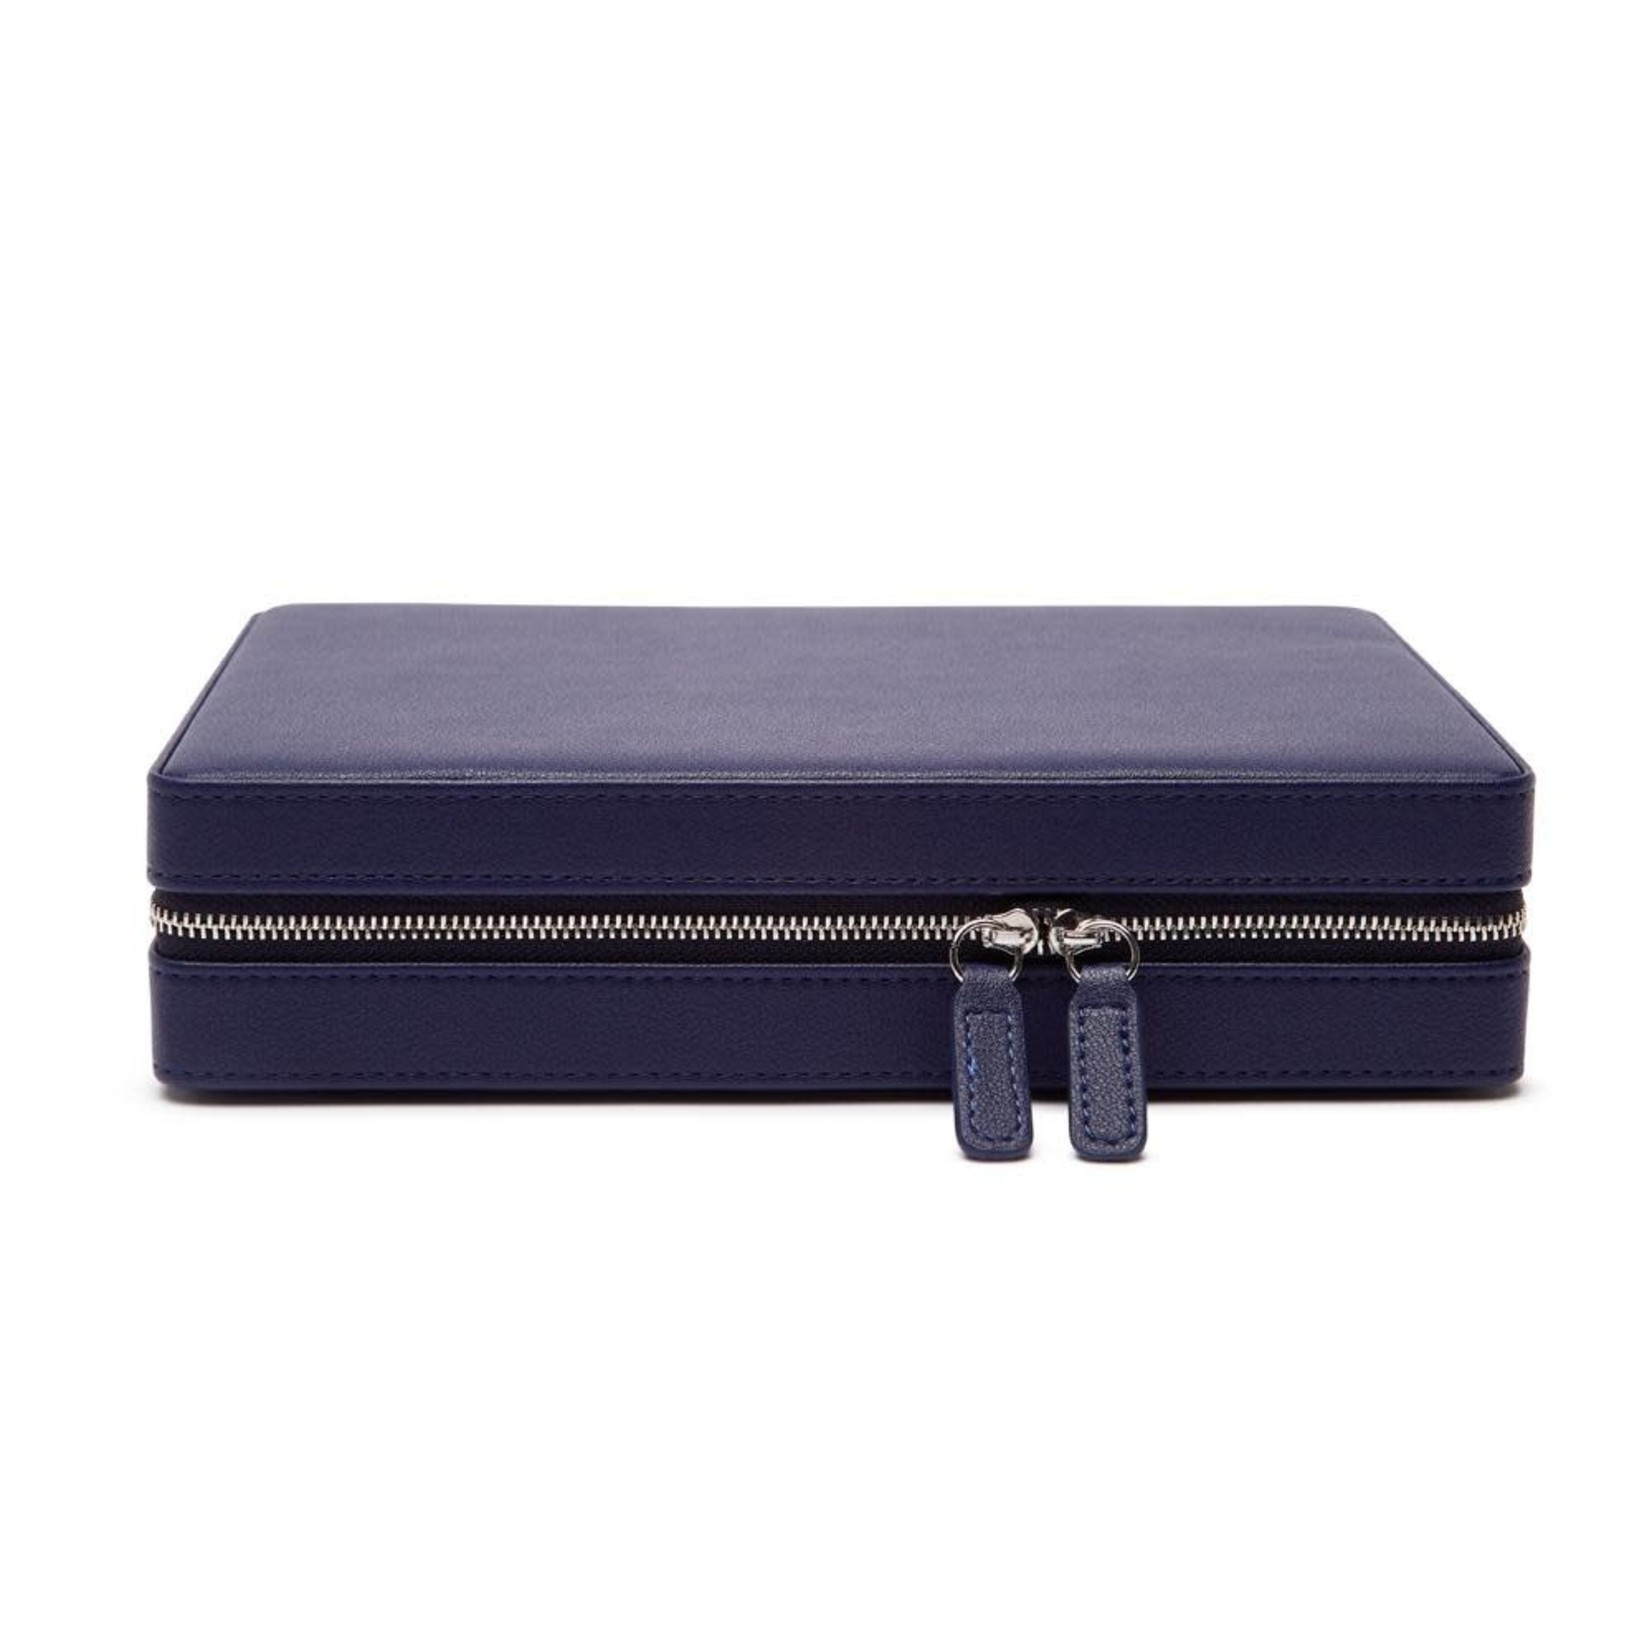 Brouk & Co The Luna Large Travel Jewelry Case Navy